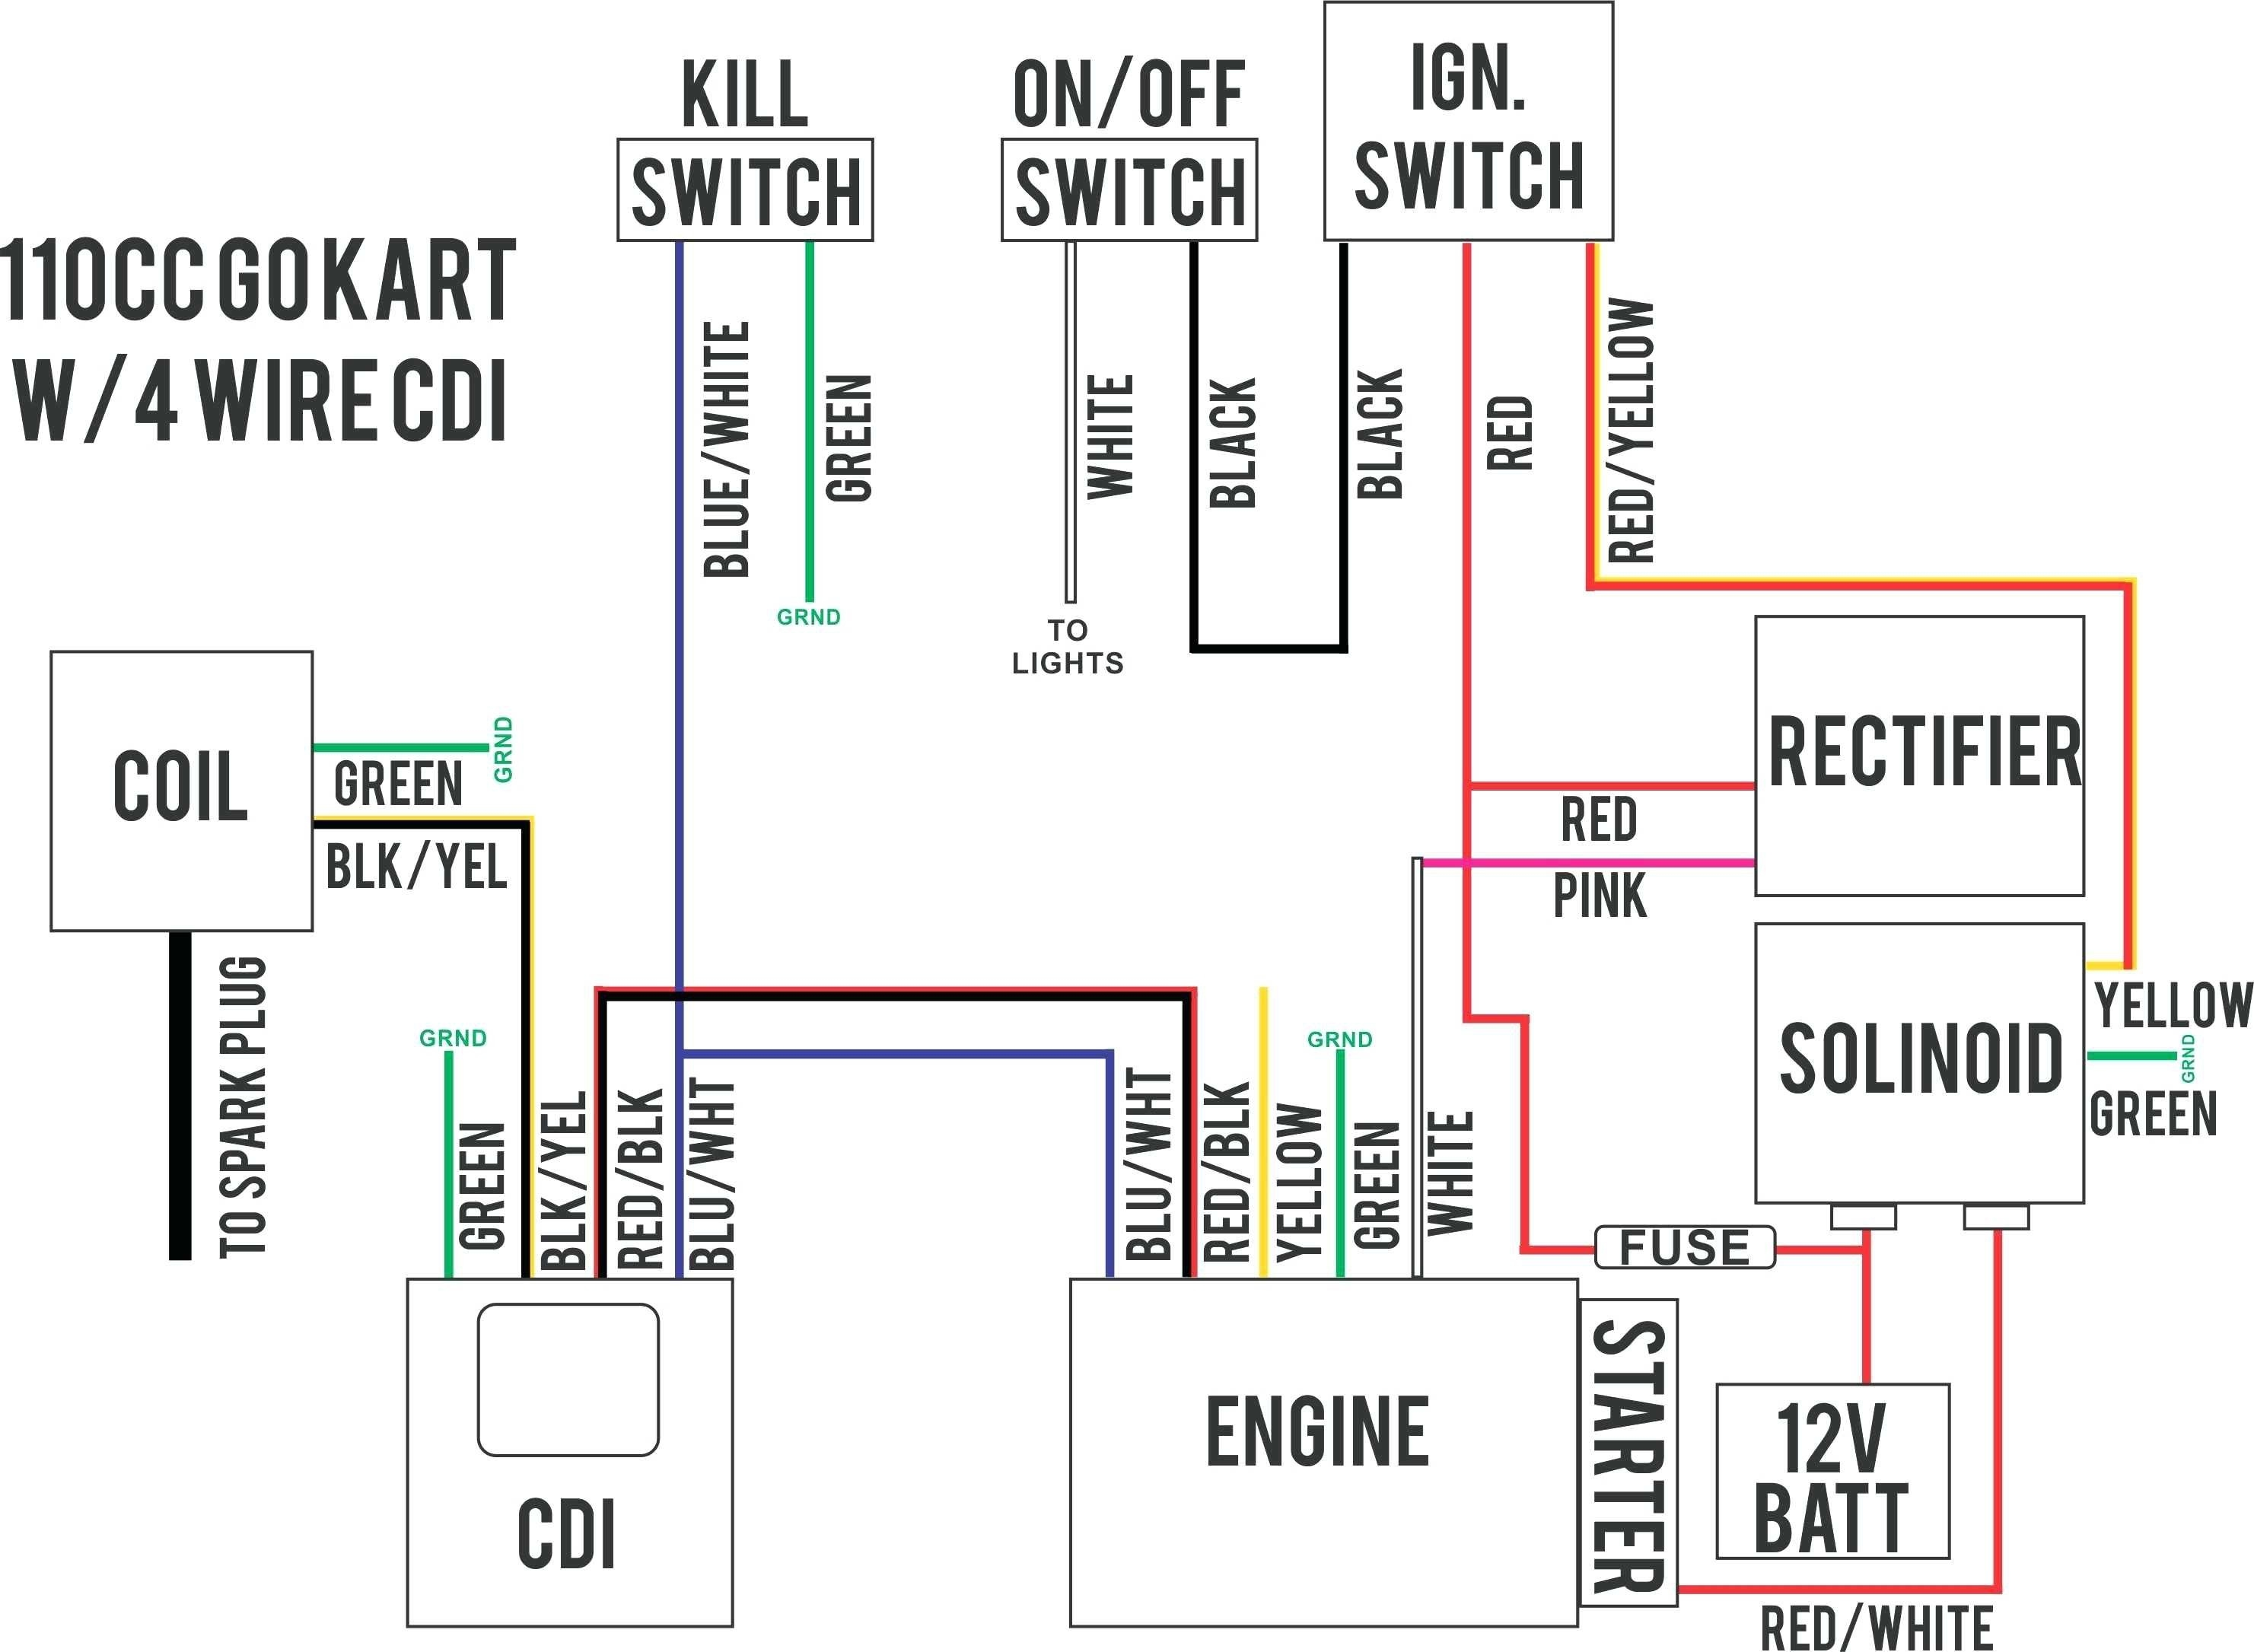 remote car starter wiring diagram - wiring diagram remote car starter new auto  car wiring diagram